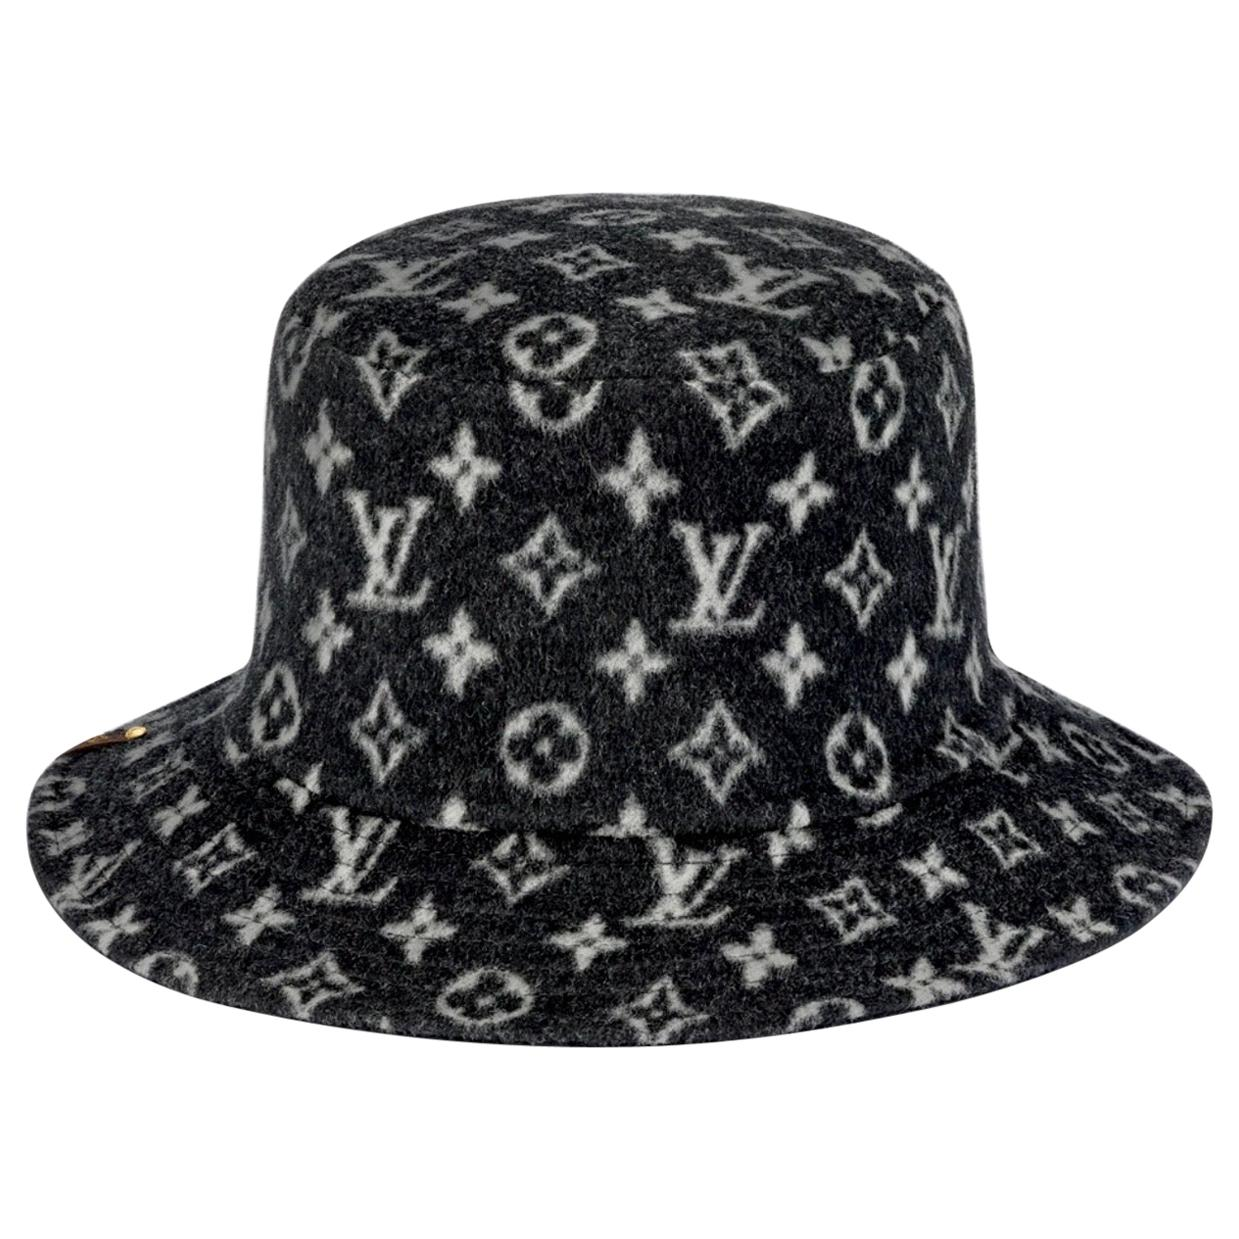 CARRY ON BOB, Reversible Black Bob Wool Bucket Hat Size Small, Brand New In Box